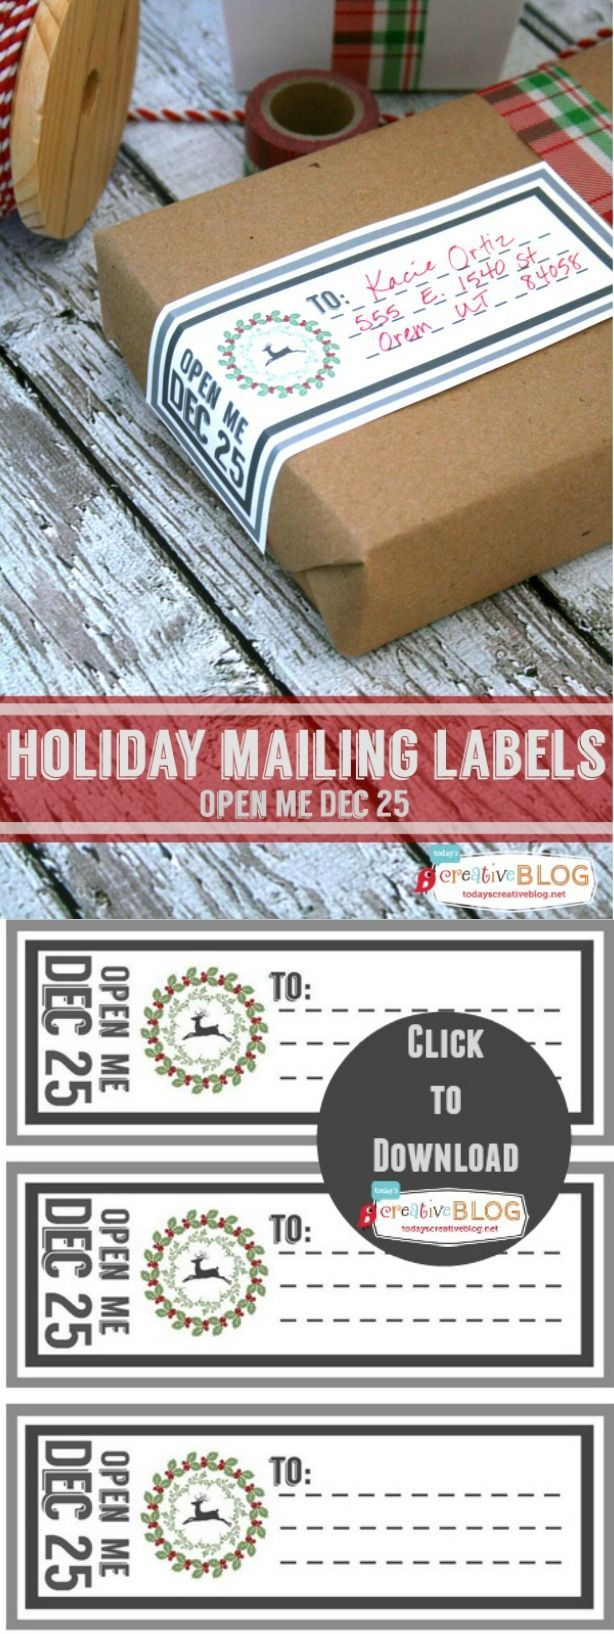 clear labels on wedding invitations clear address labels wedding